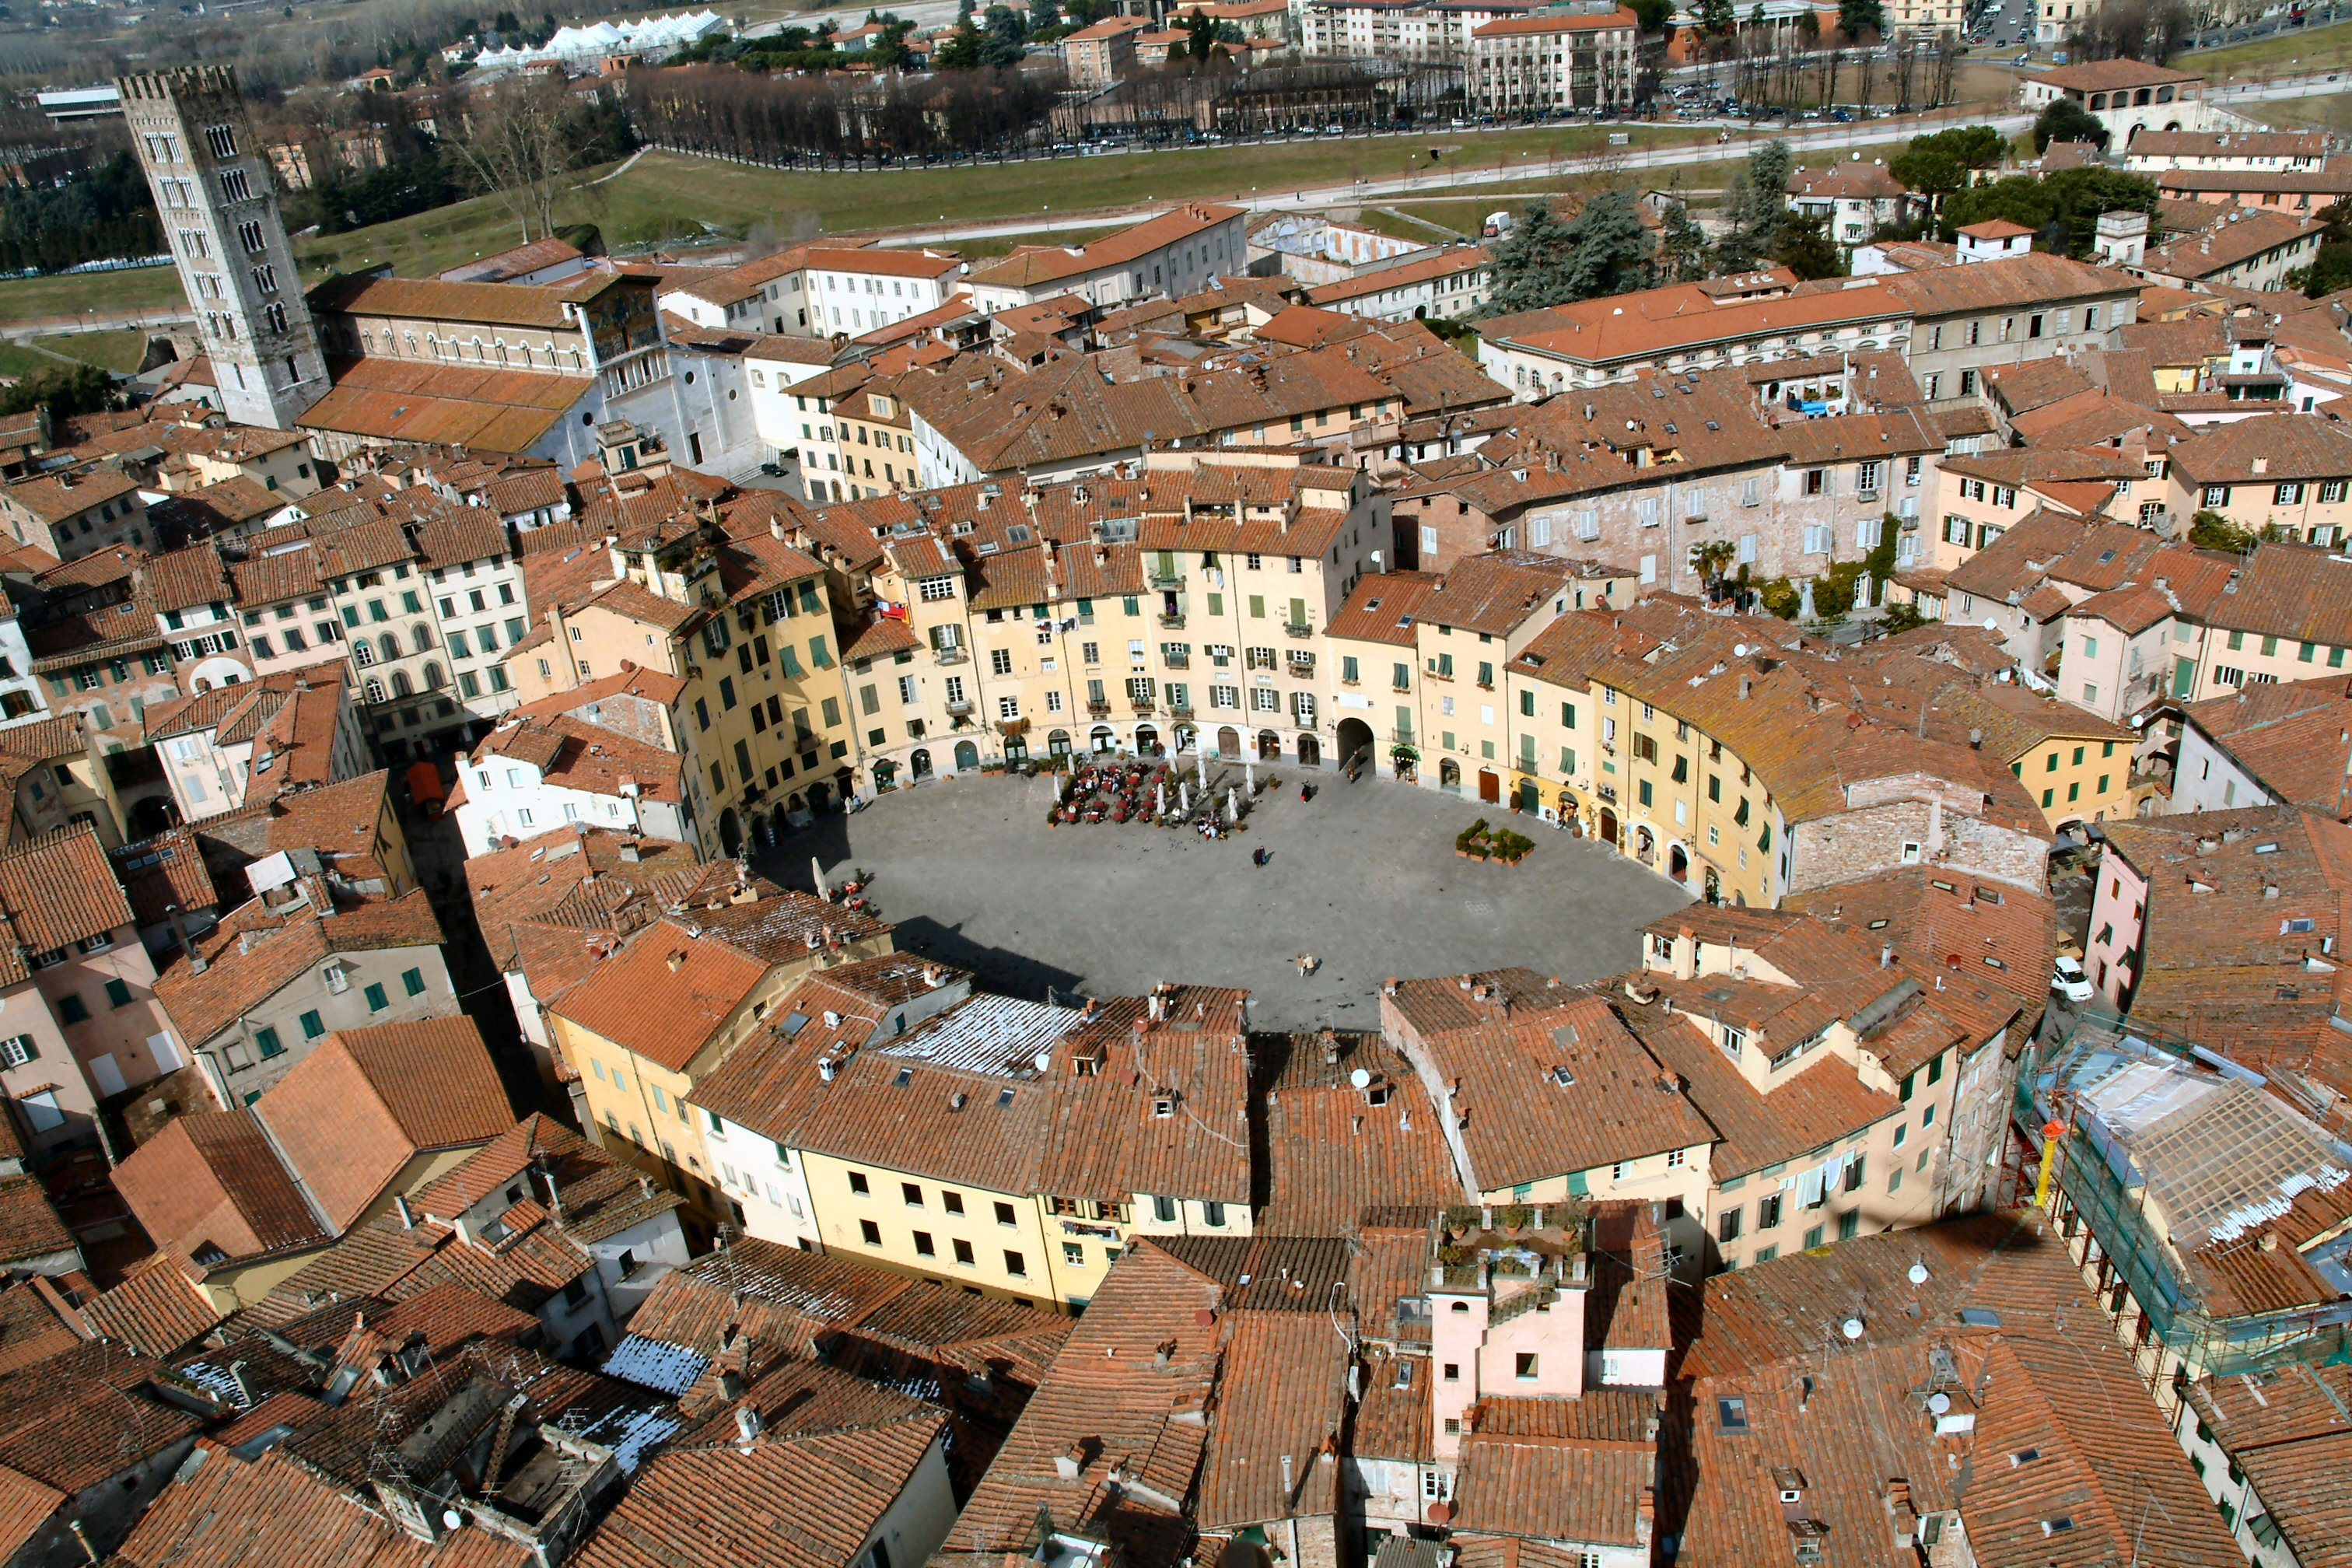 Ariel-view-of-Lucca.jpg